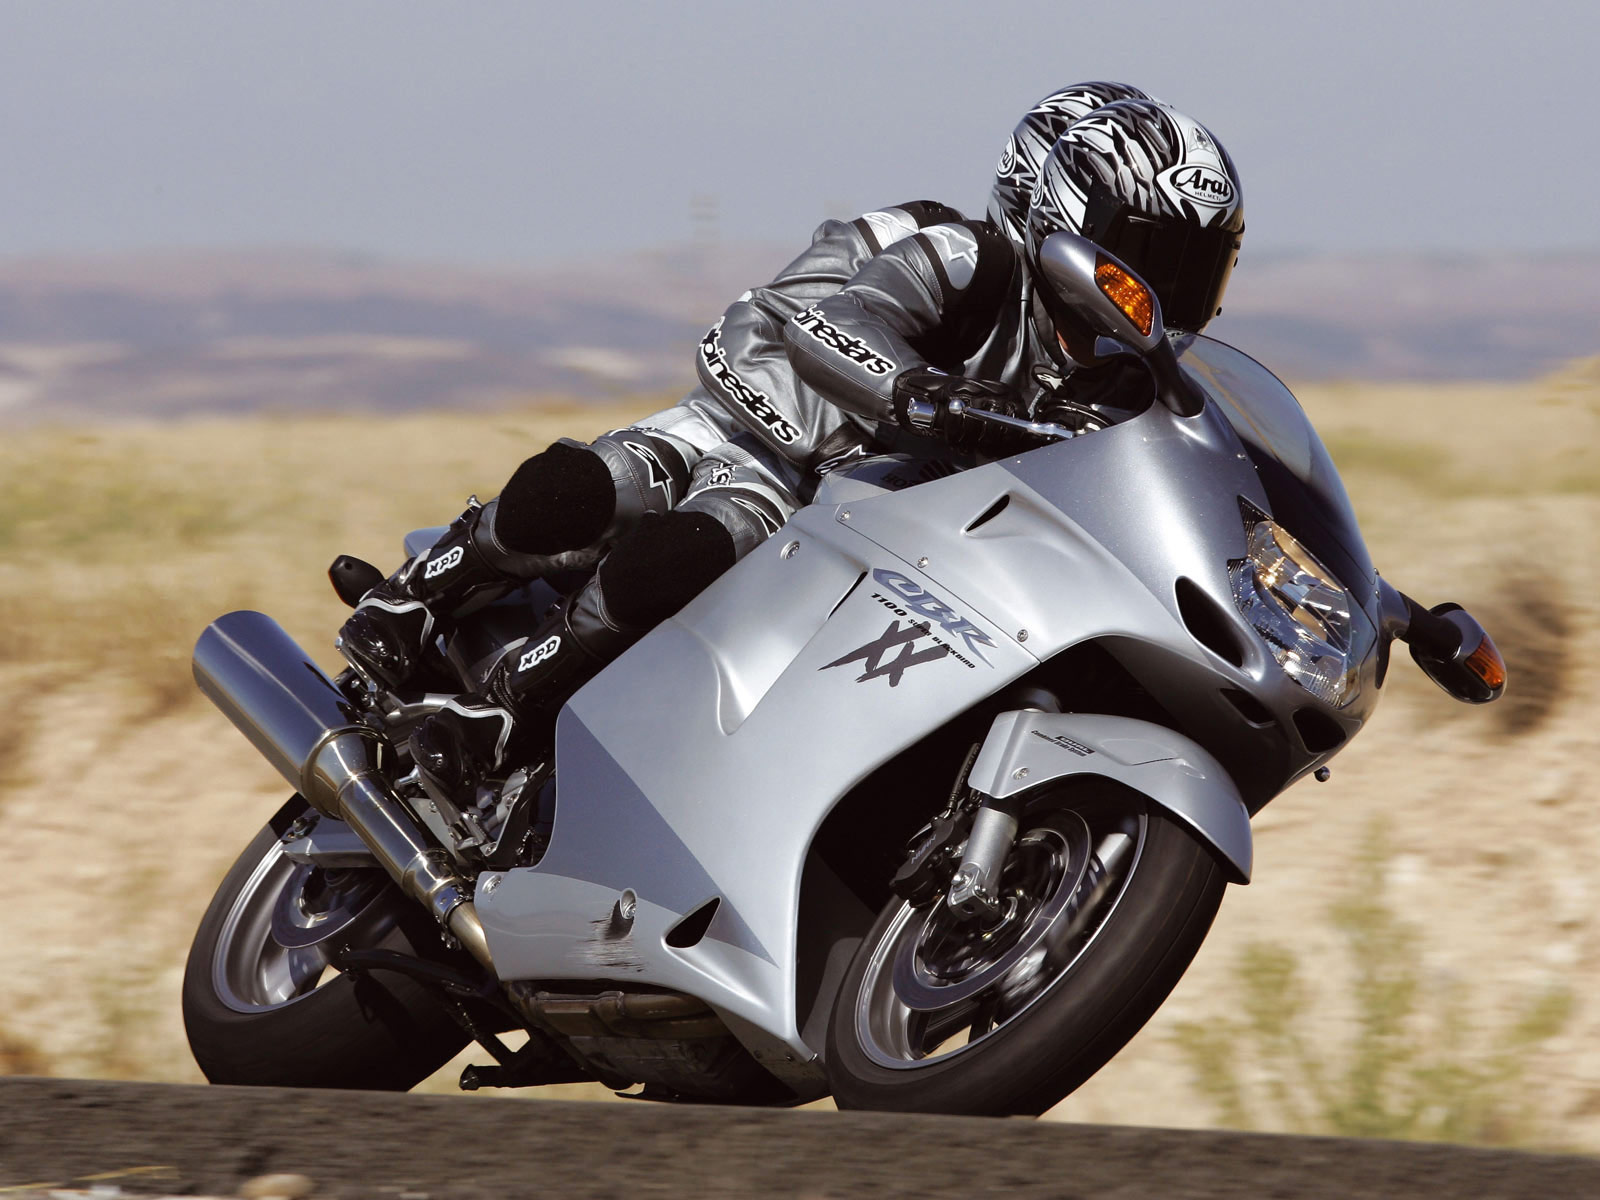 Honda CBR 1100 XX 2002 wallpapers #174255